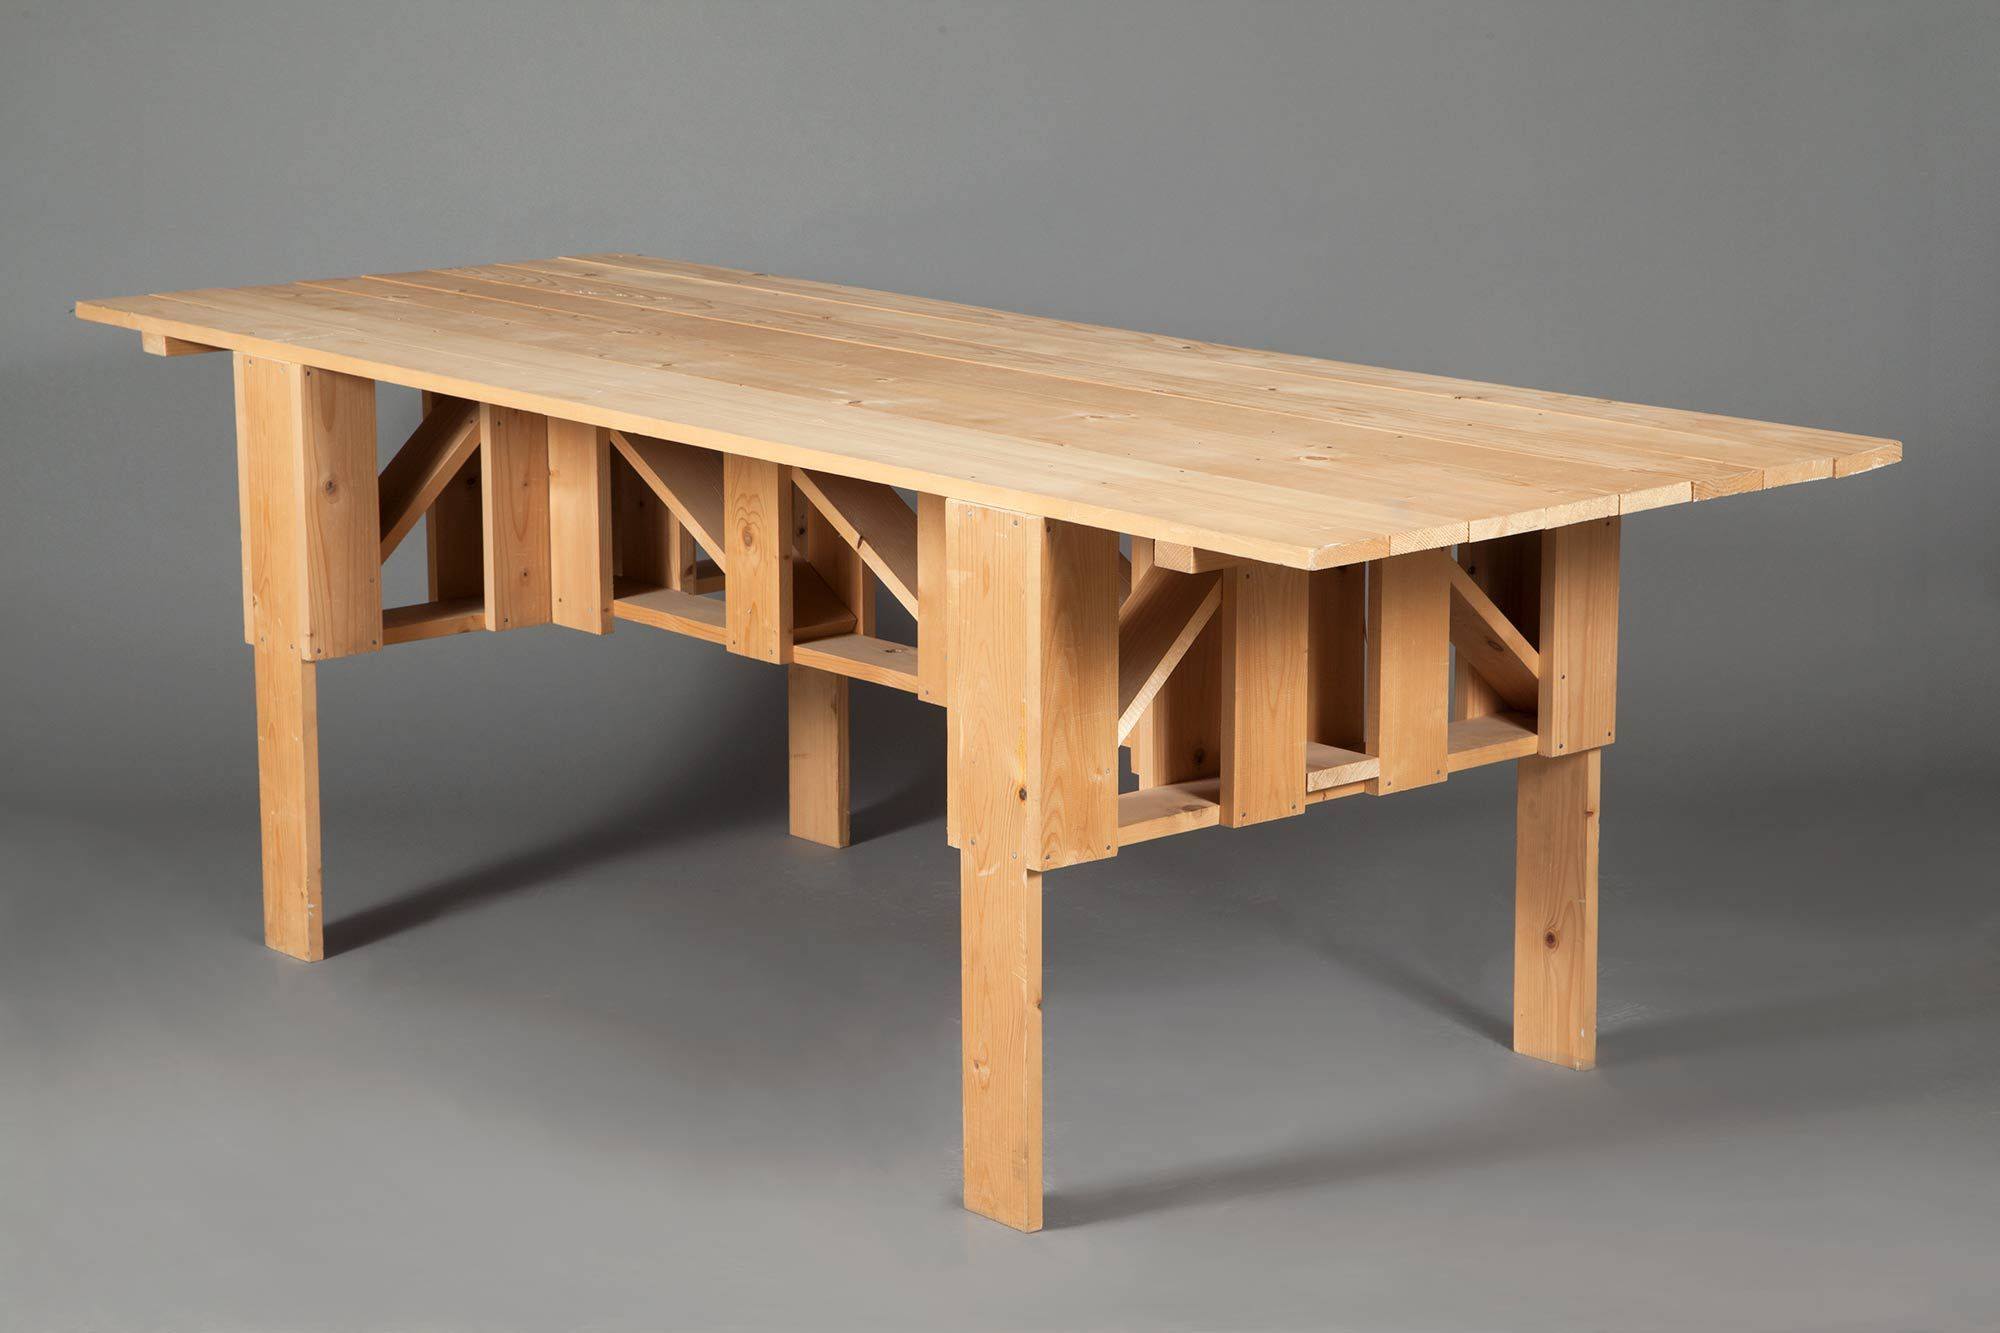 Doyle Lot 17dd02 264 Pine Dining Table Dining Table Dining